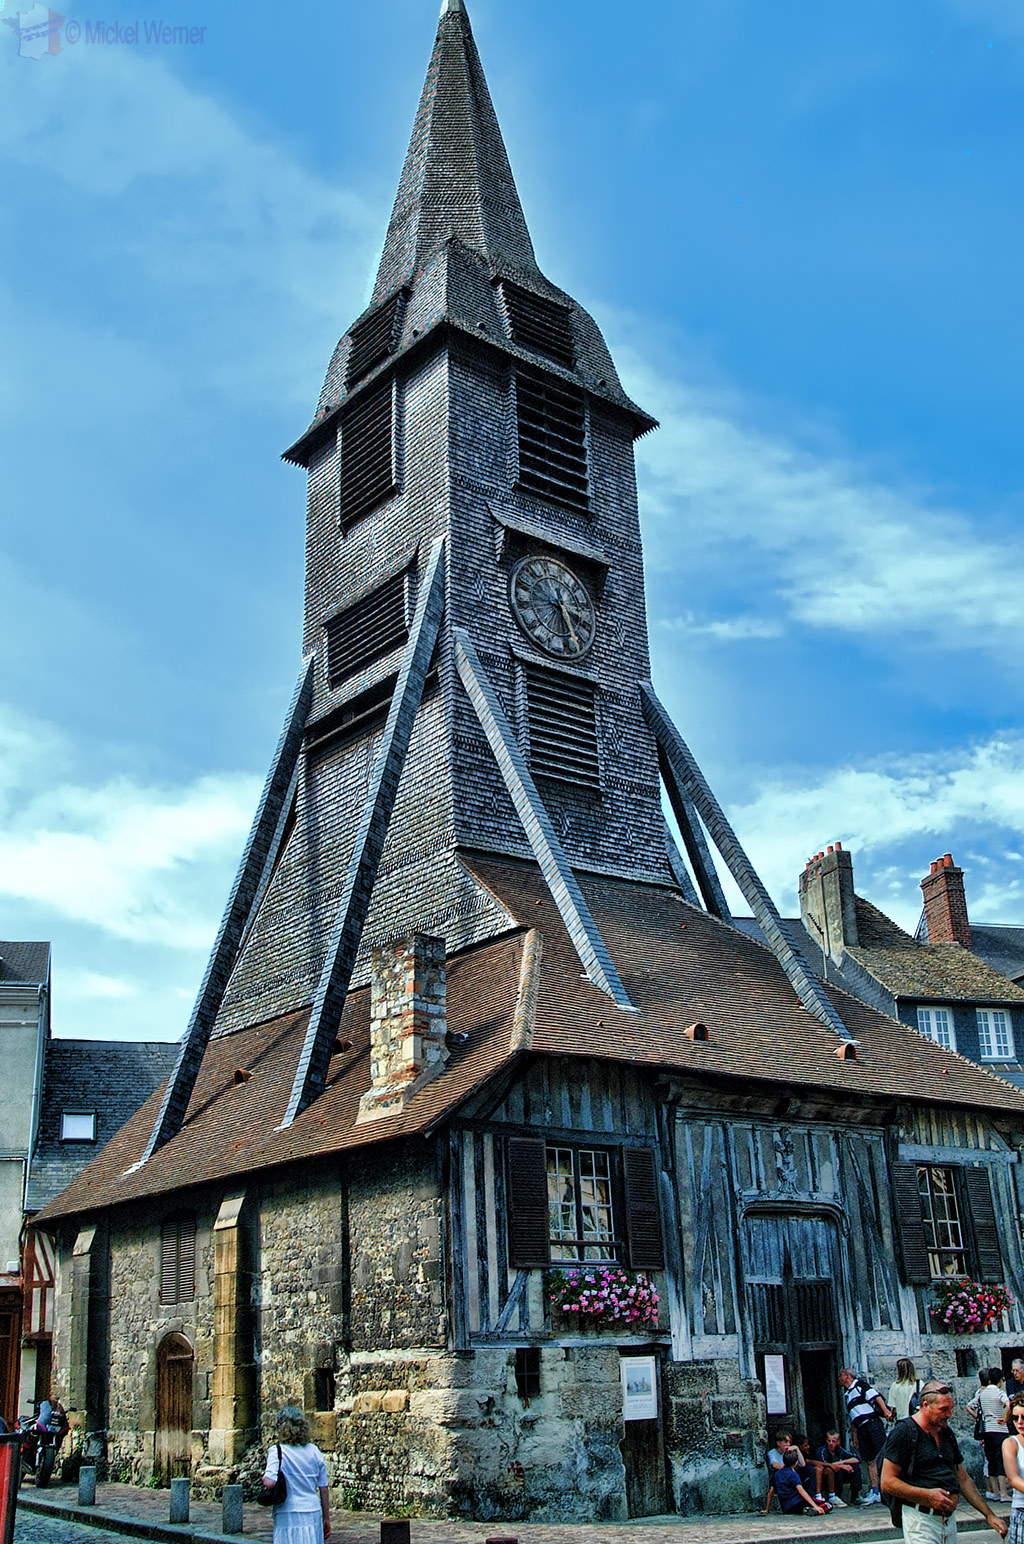 The bell tower of the Sainte-Catherine church of Honfleur